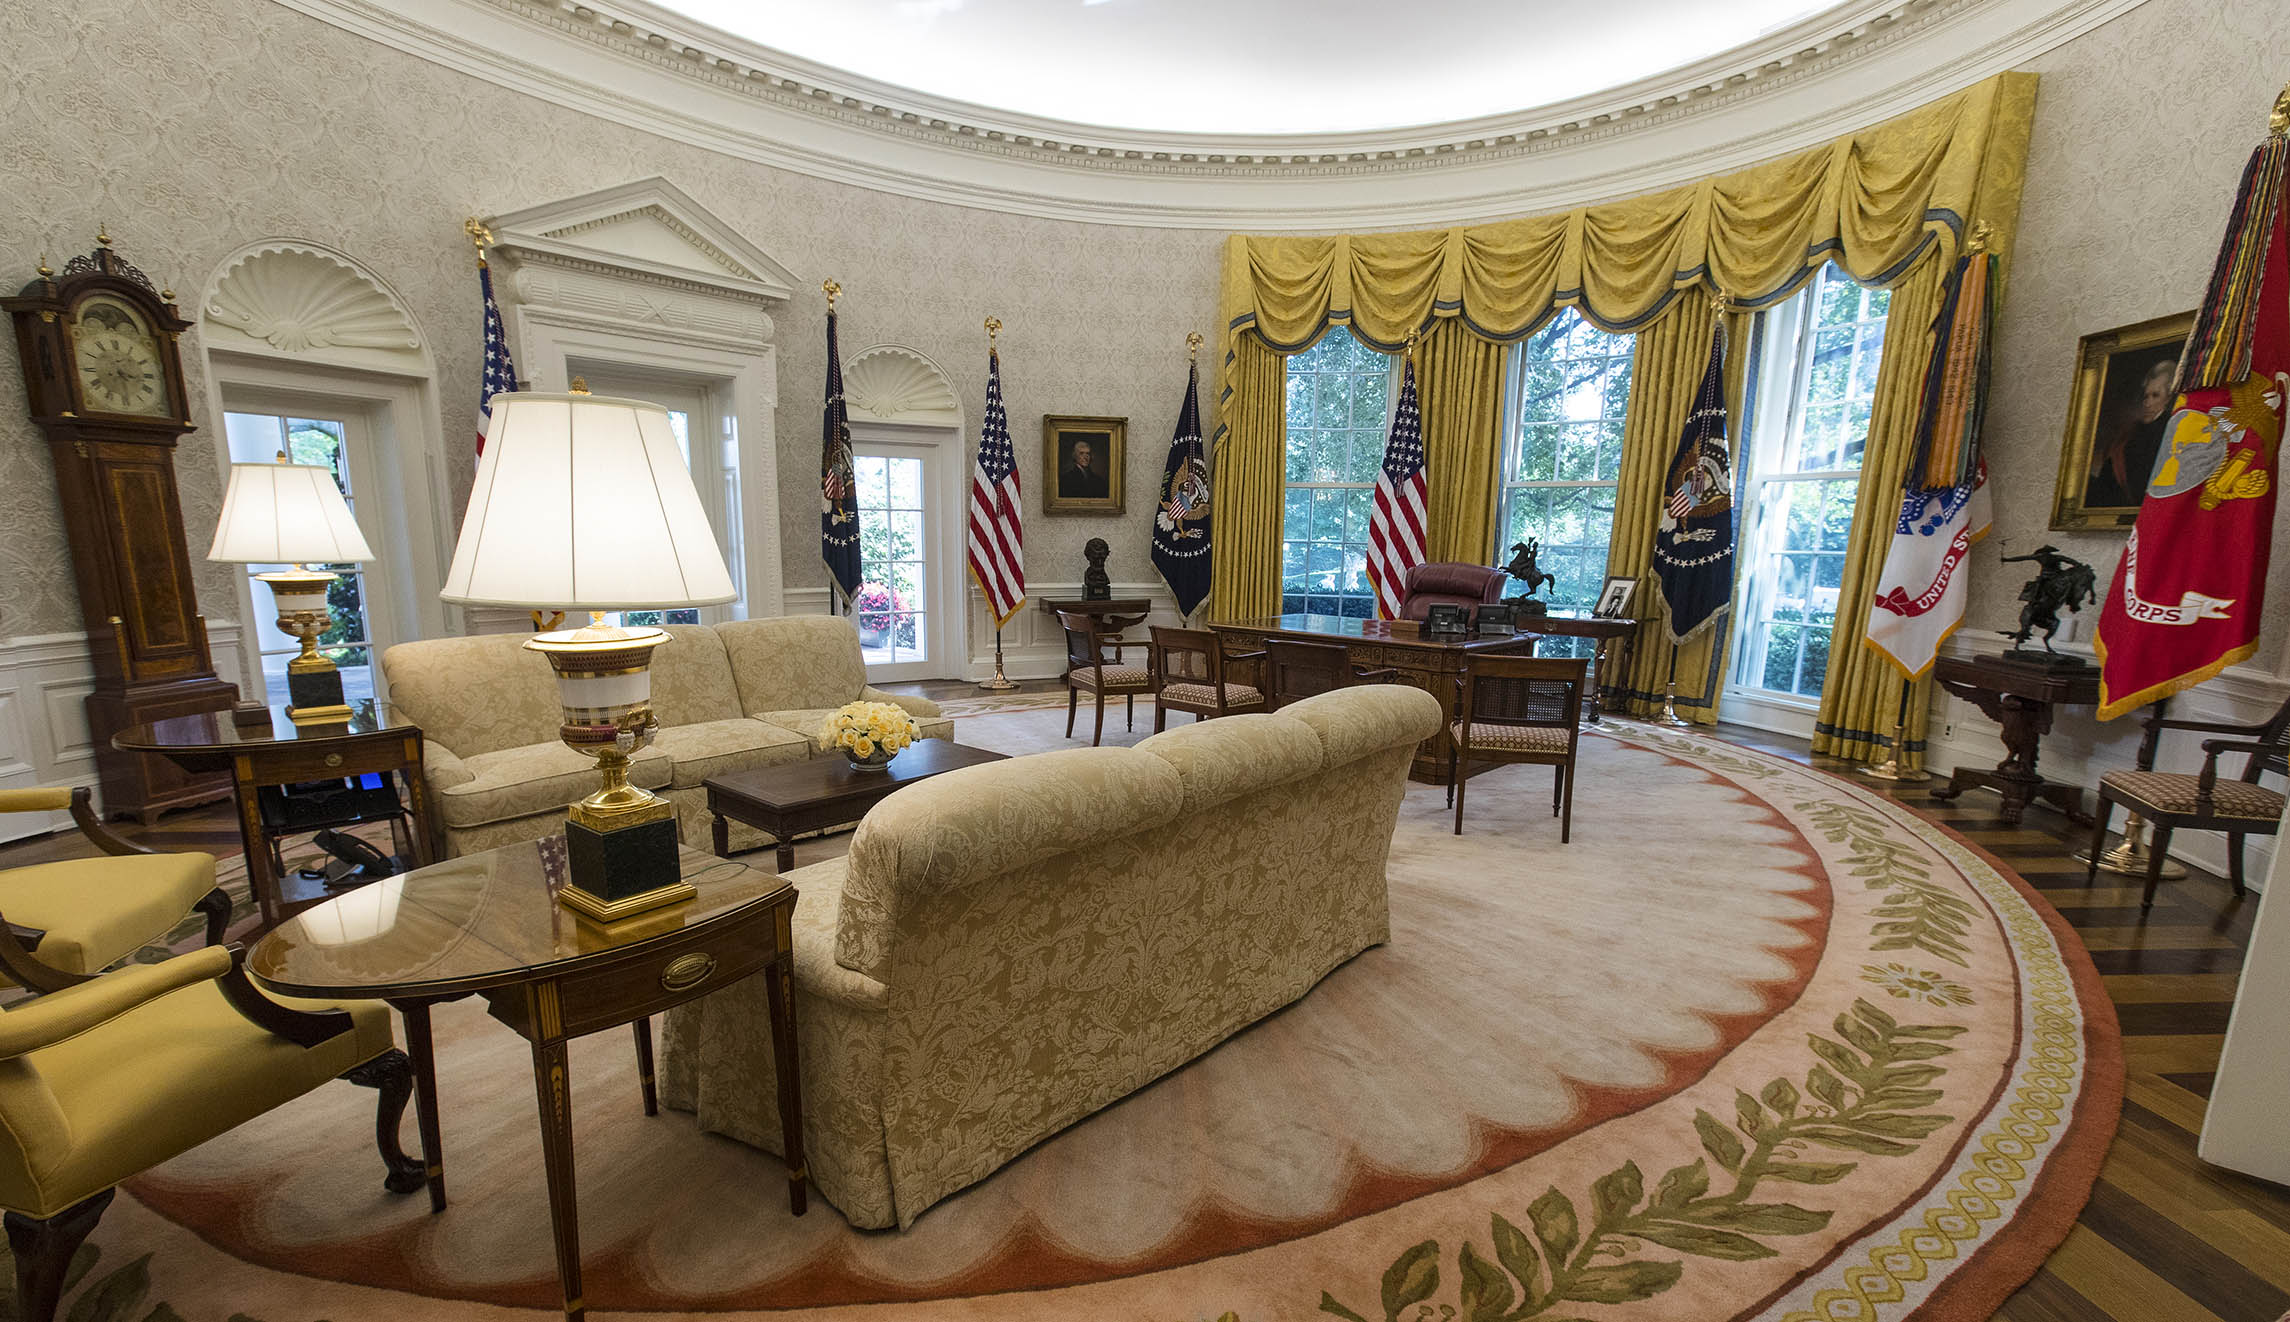 One White House Official Called It Temporary Wallpaper Saying May Or Not Be Switched After Trump Selects A Permanent Rug Design